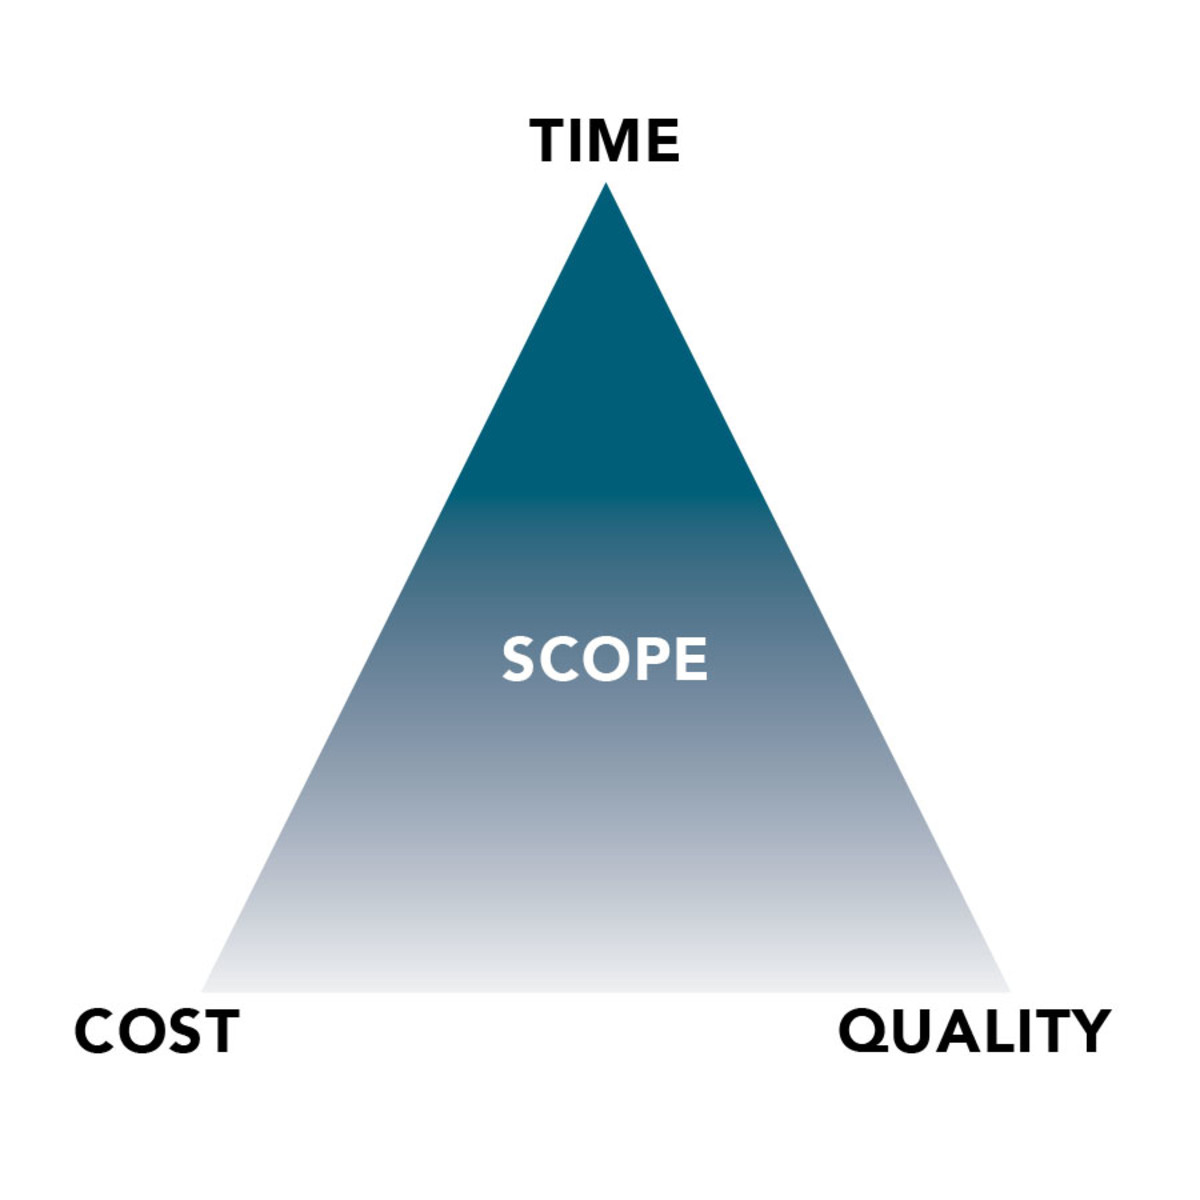 A successful refit must balance three components: time, quality and cost.